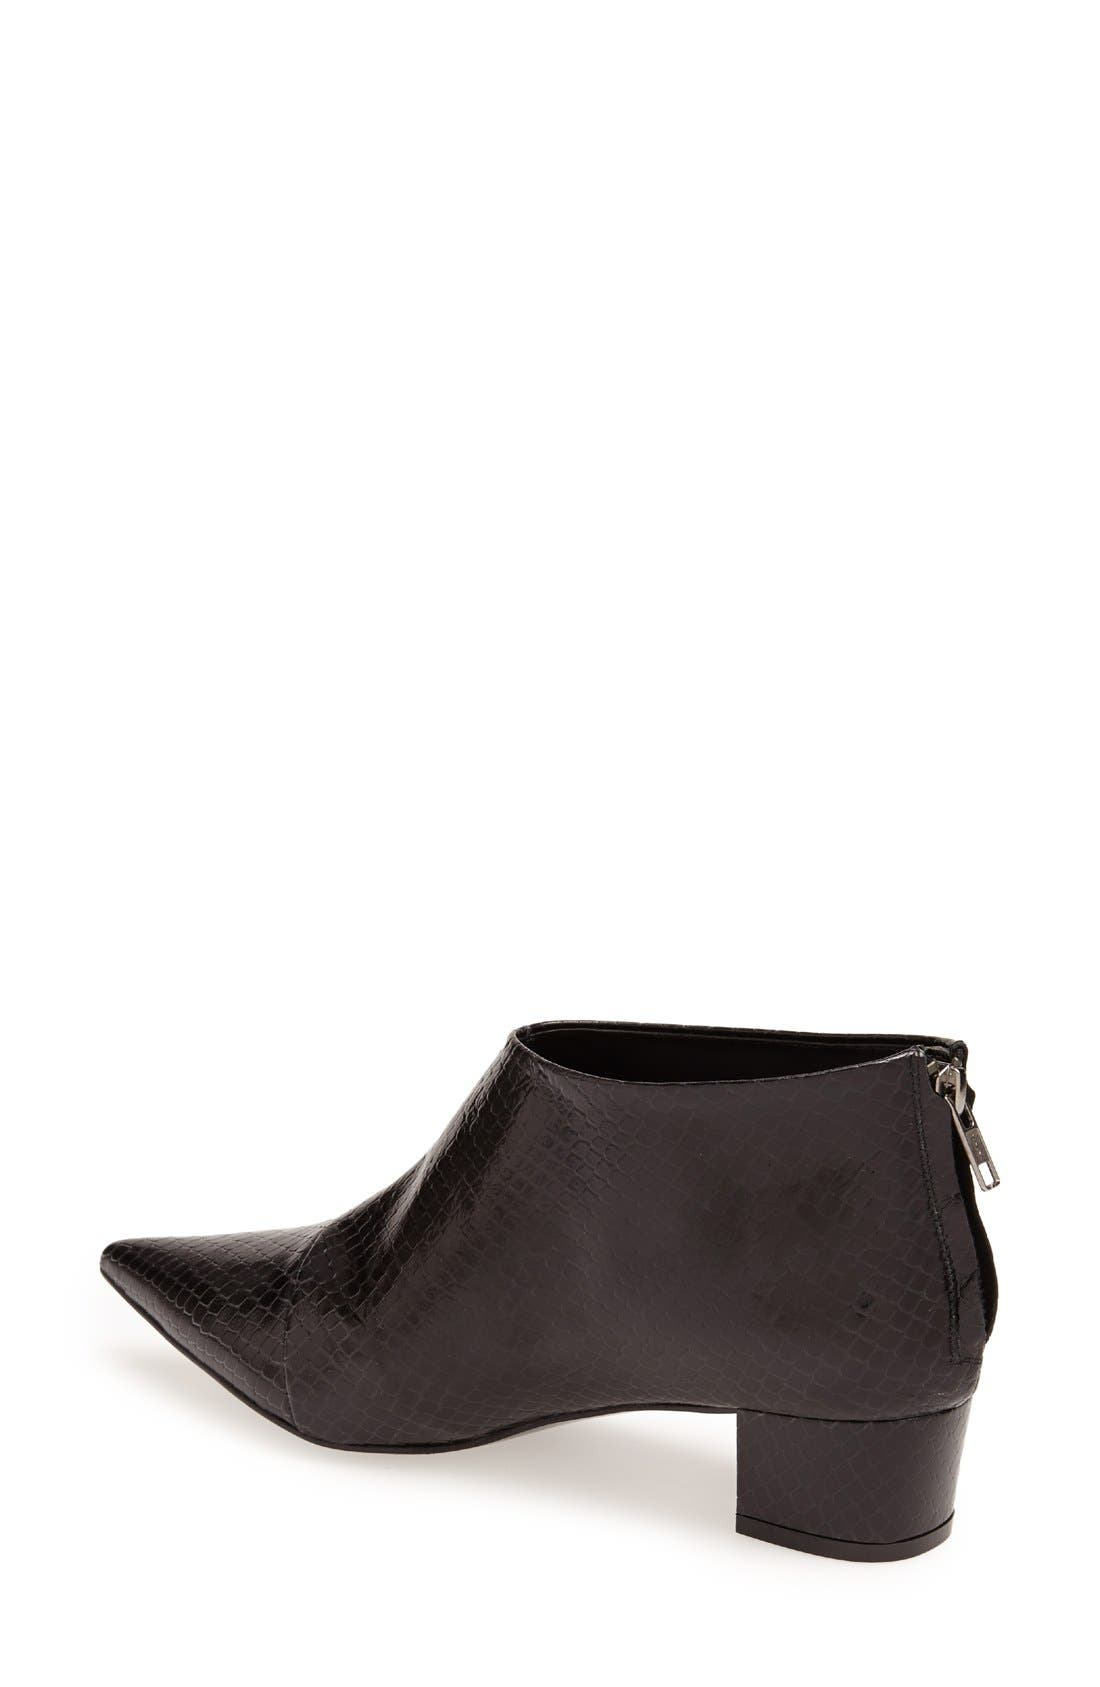 Alternate Image 2  - Topshop 'Ashley' Pointy Toe Leather Ankle Boot (Women)